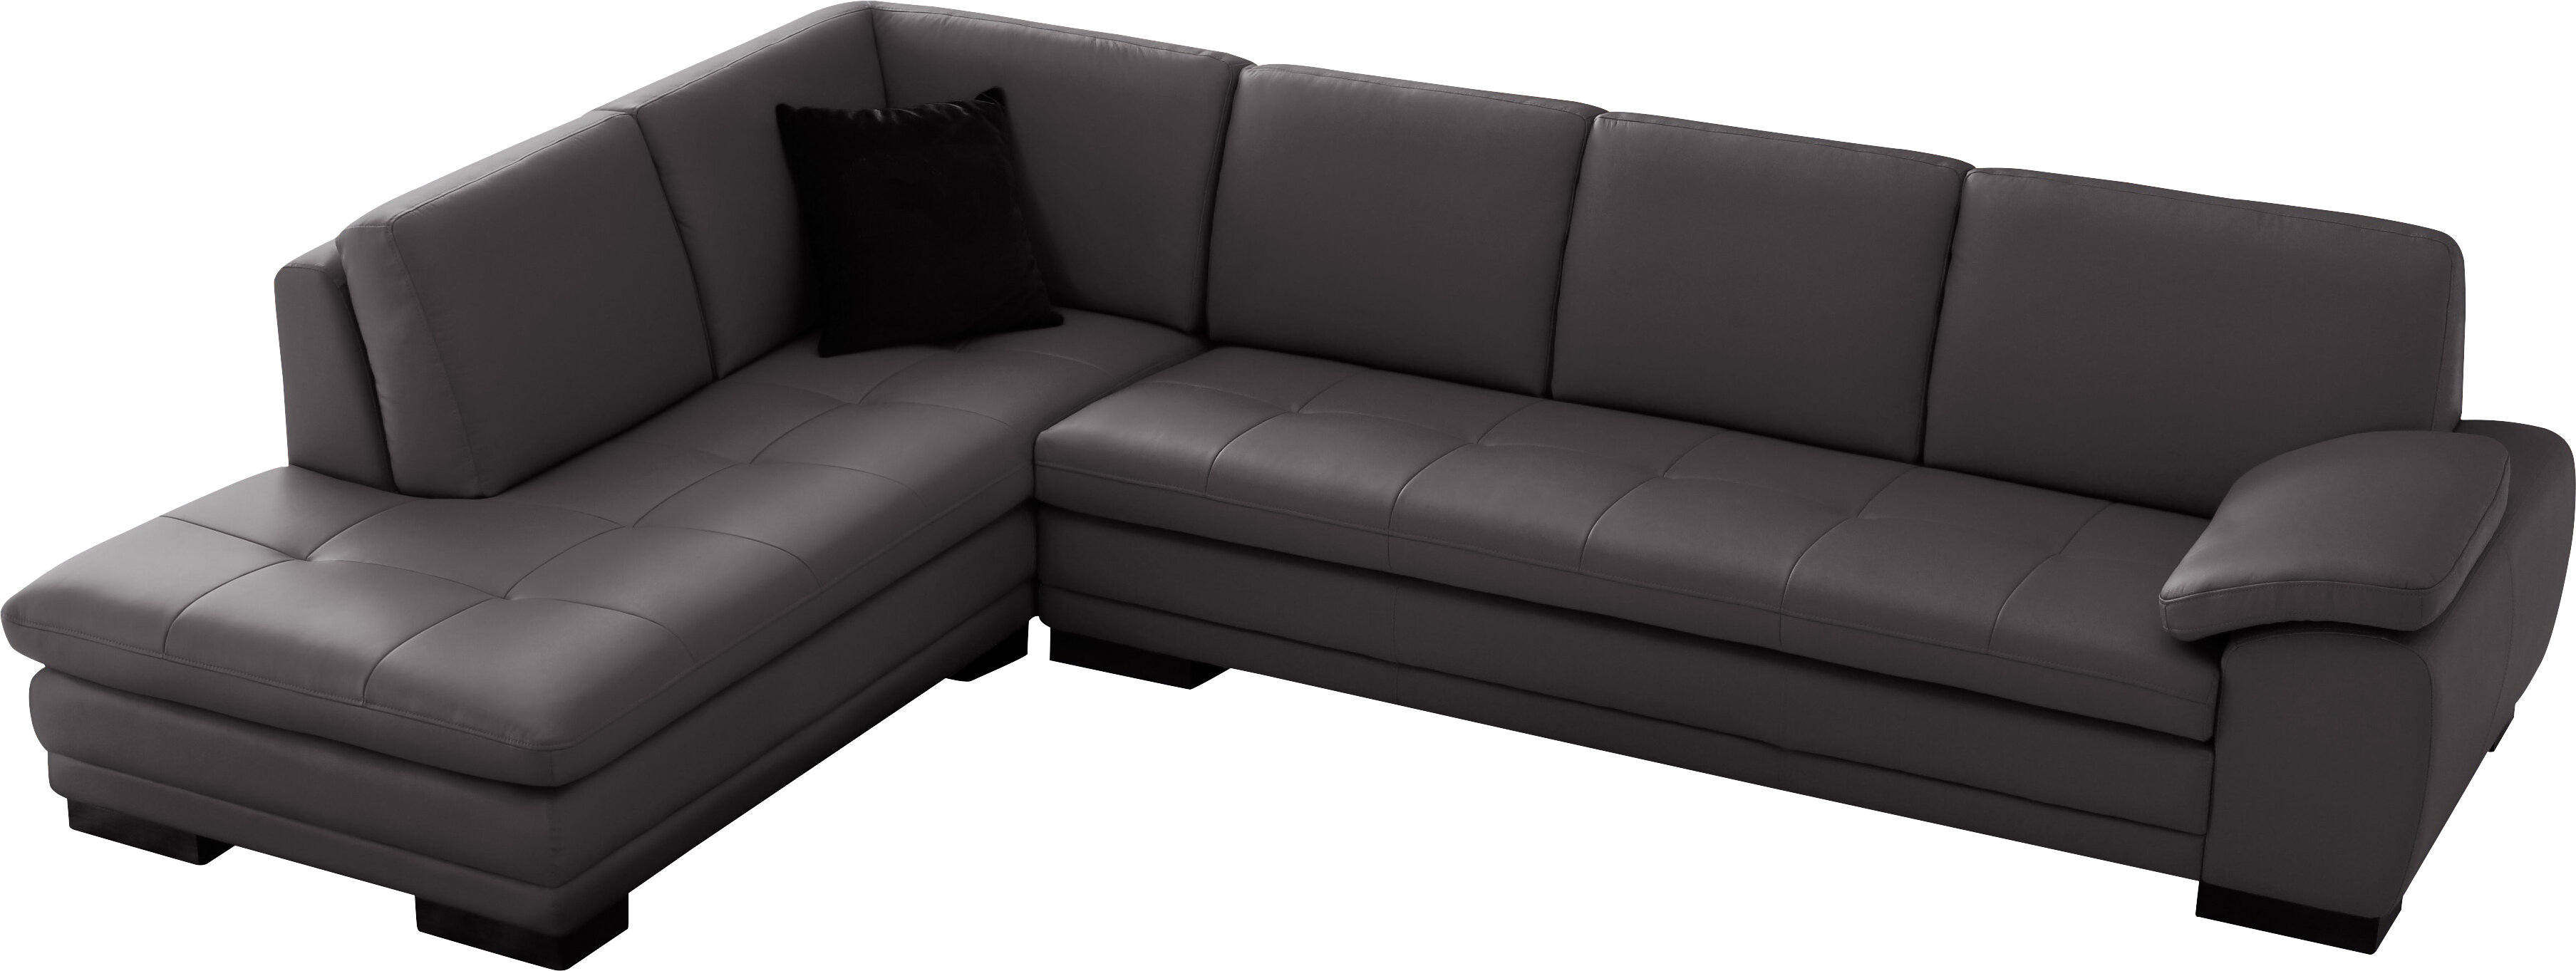 sofa collection with sofas sleeper awesome ideas of leather sectional small black grey